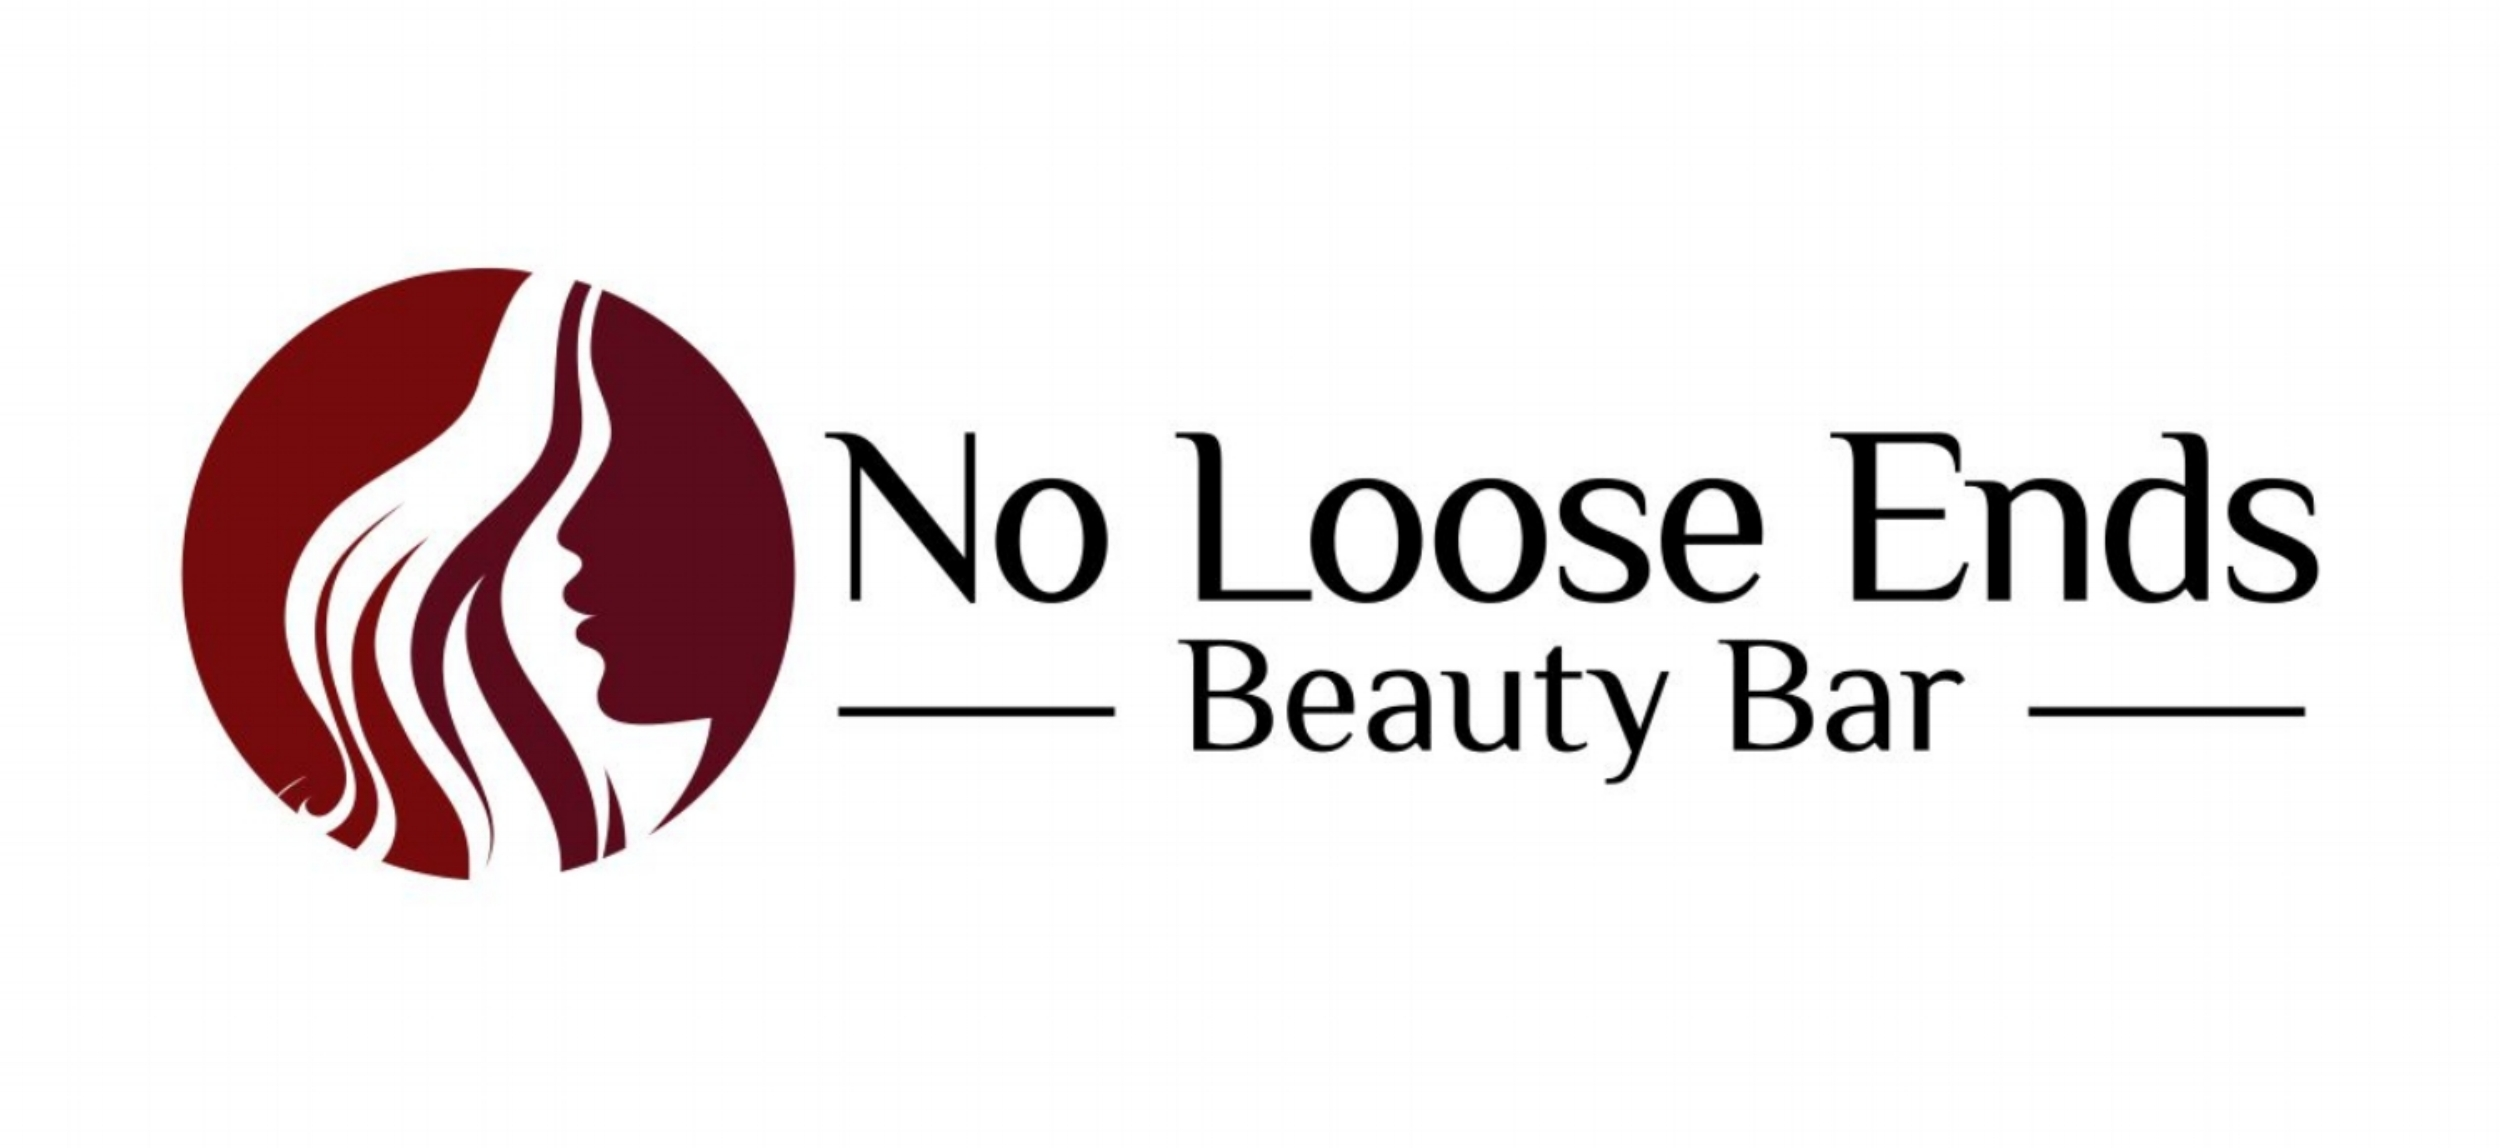 No Loose Ends Beauty Bar Salon